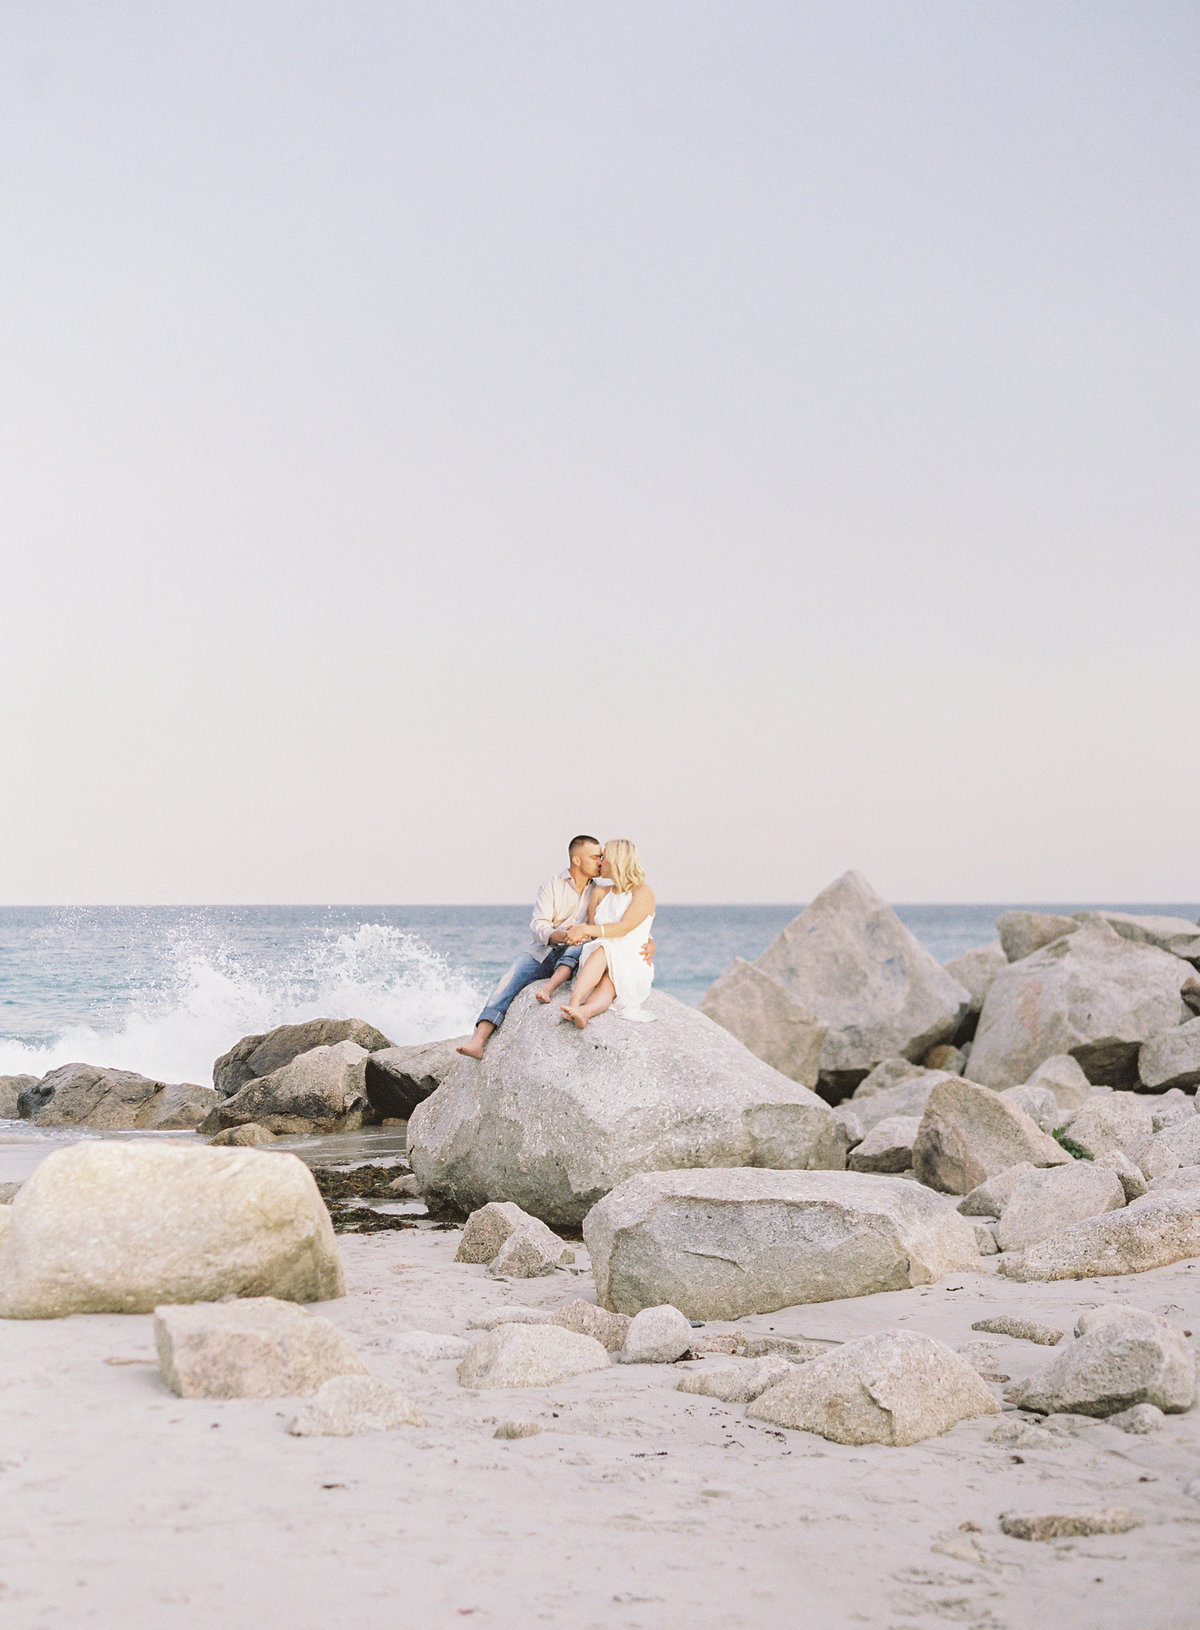 Jacqueline Anne Photography  - Hailey and Shea - Crystal Crescent Beach Engagement-123